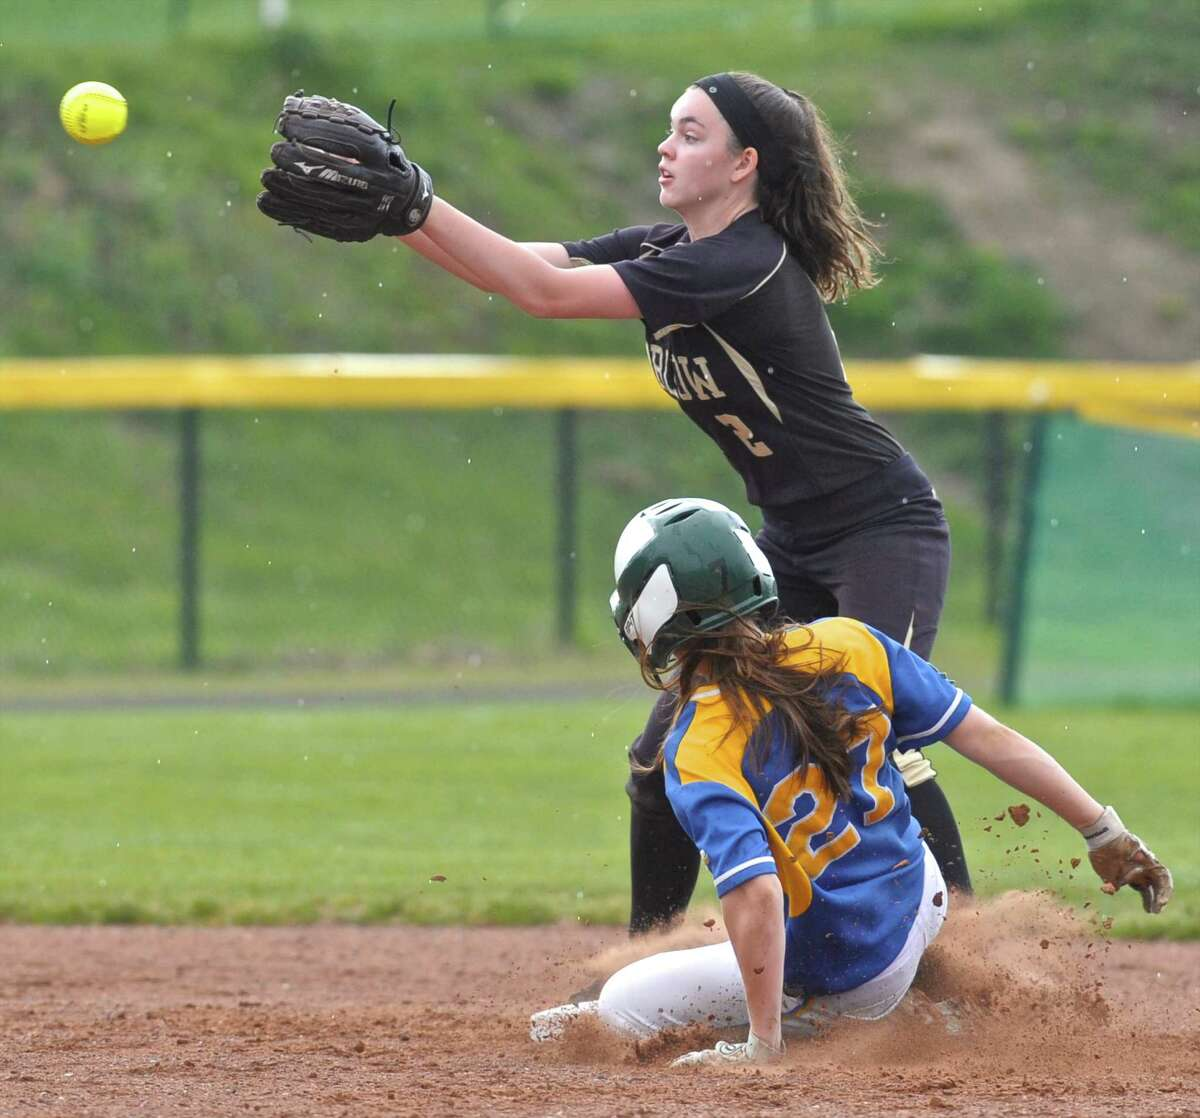 Newtown's Mackenzie Macchiarulo (27) slides safely into second base as Joel Barlow's Scotland Davis (2) reaches for the ball in the SWC softball game between Newtown and Joel Barlow high schools on Friday afternoon, April 22, 2016, at Joel Barlow High School, in Redding, Conn.